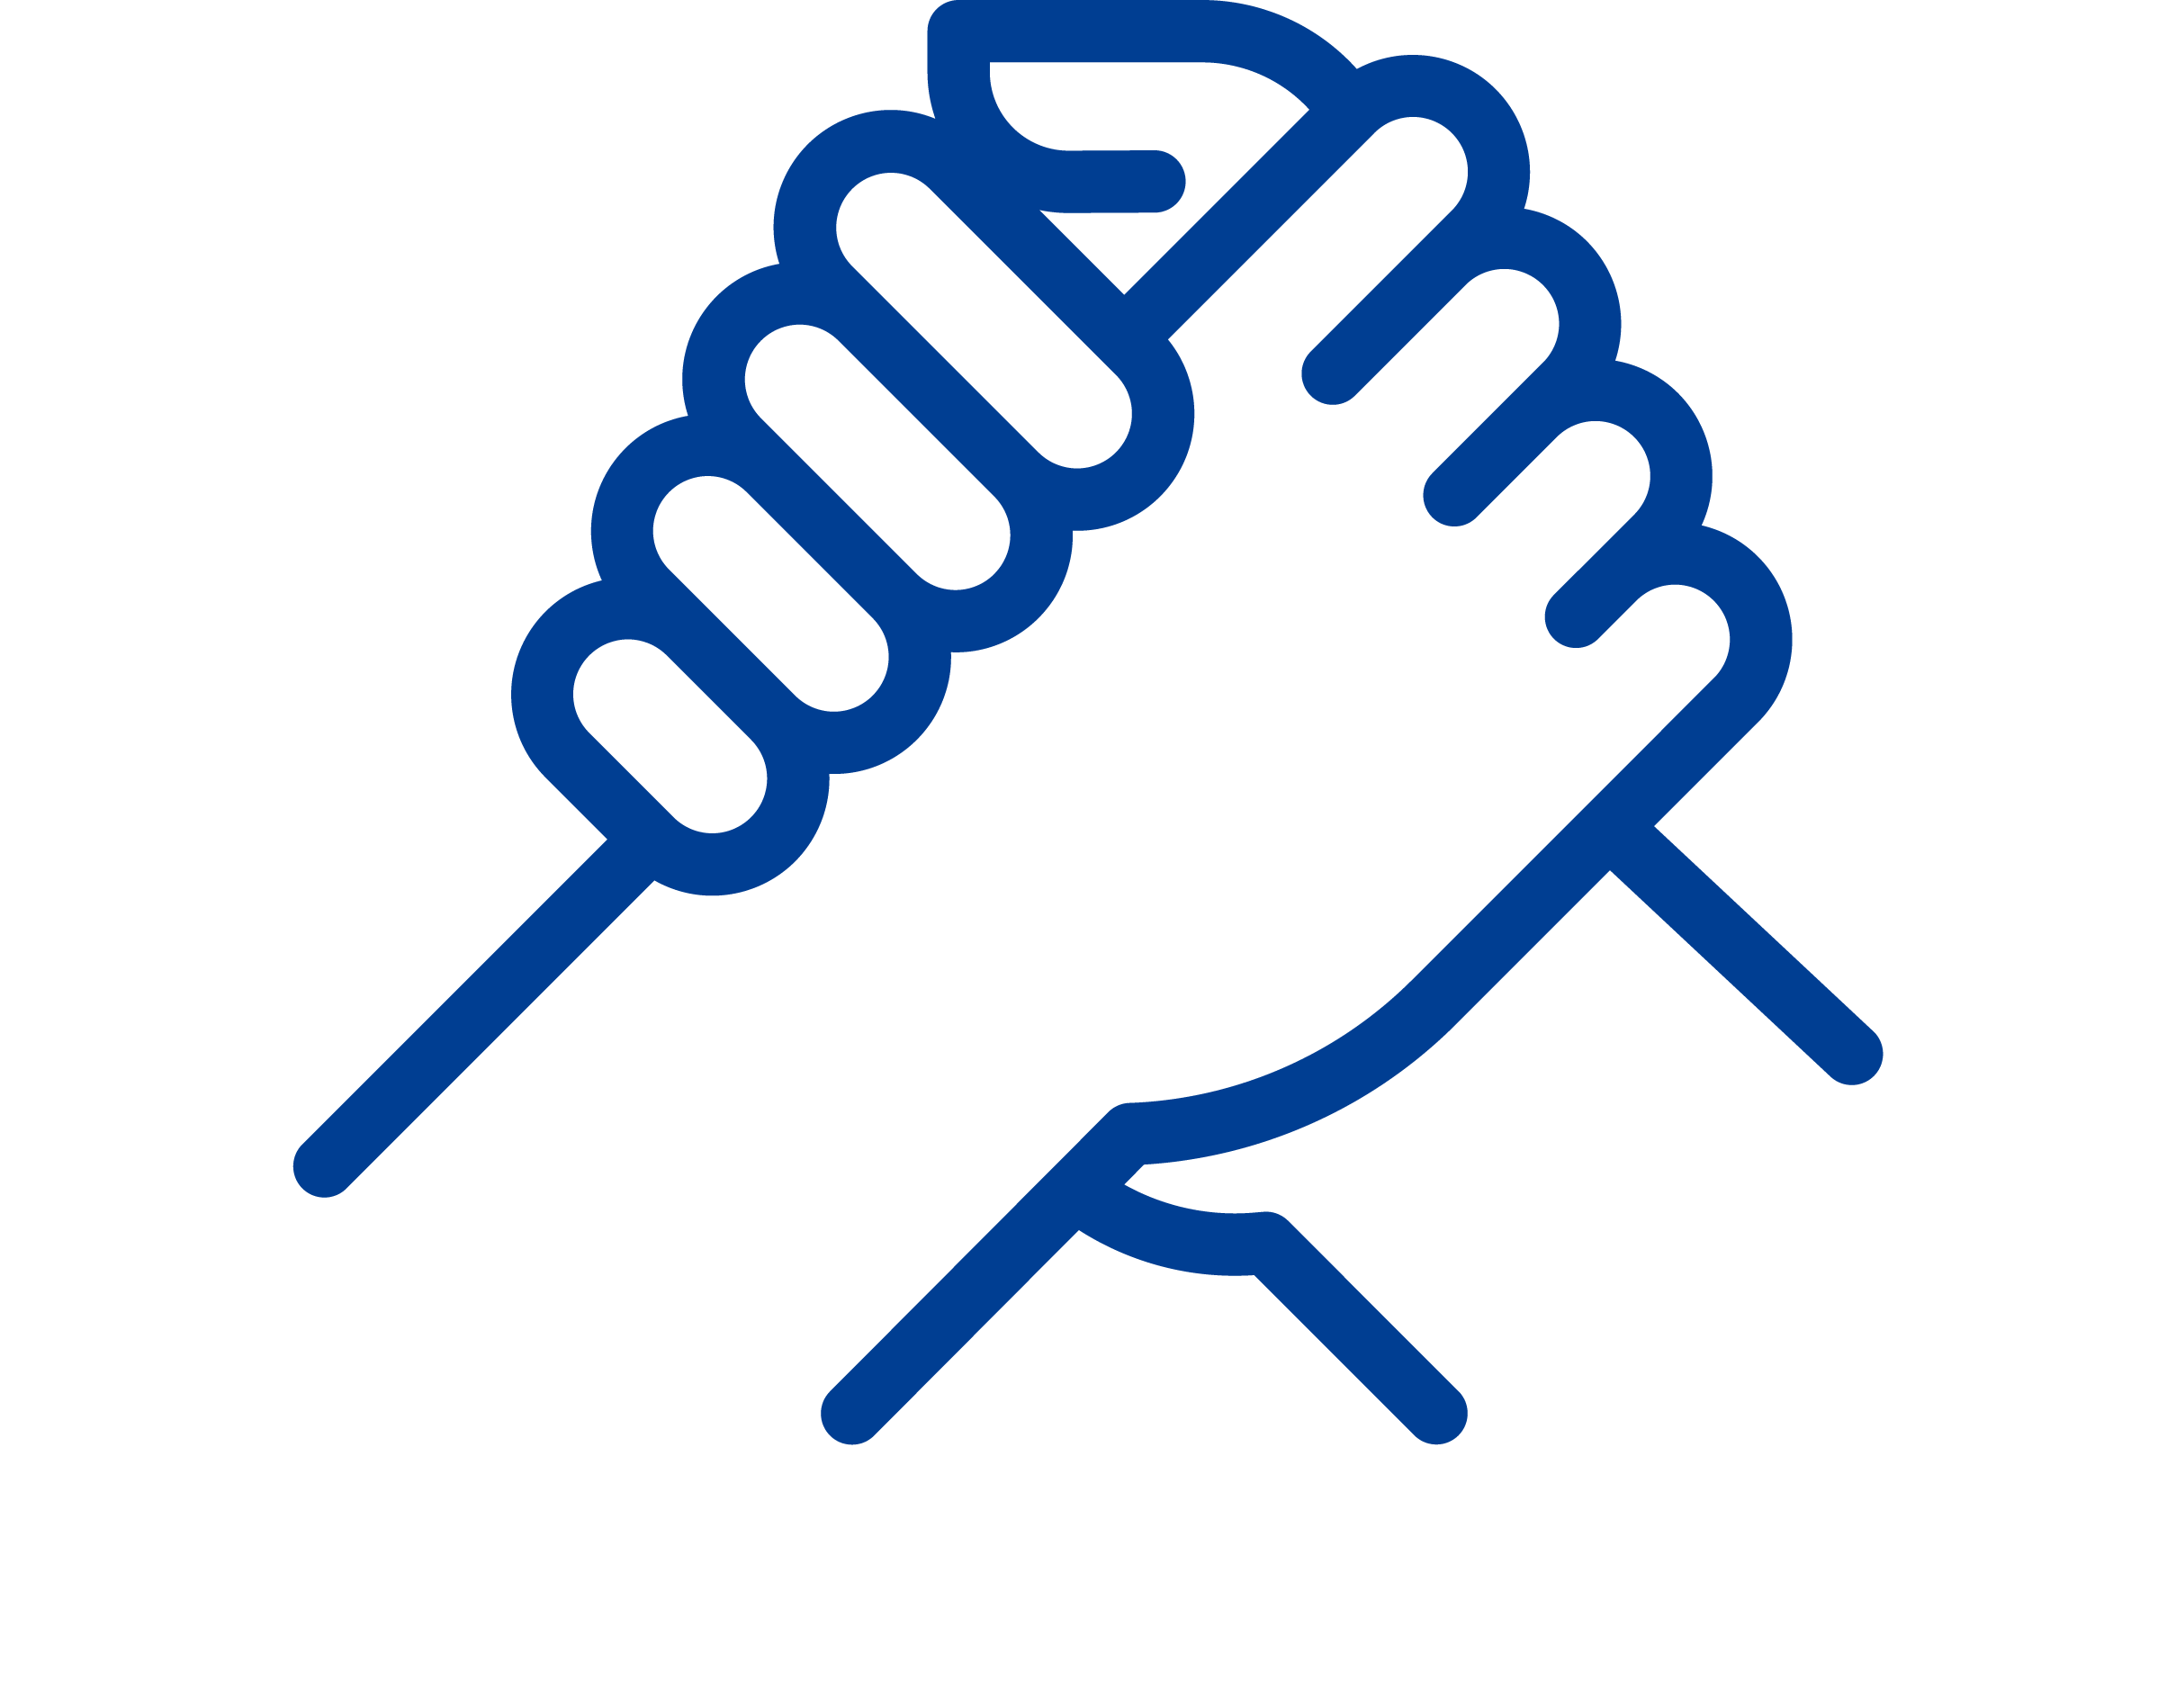 A blue icon of a van with a knife and fork drawn on it